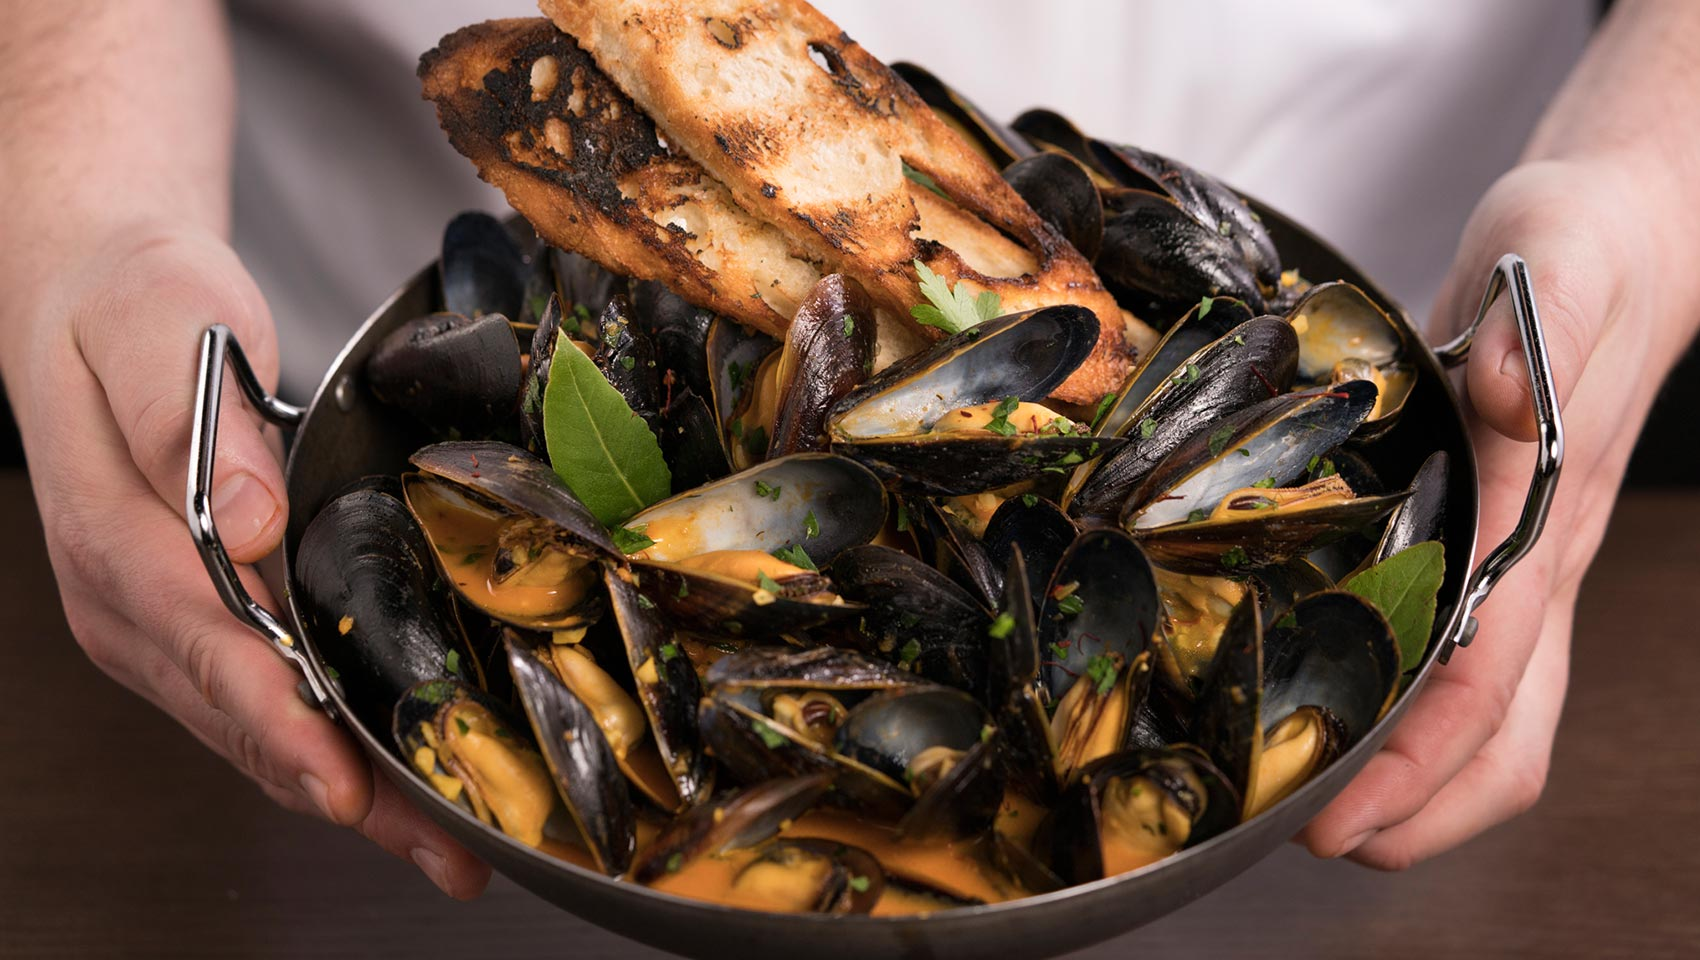 Hands holding a bowl of mussels